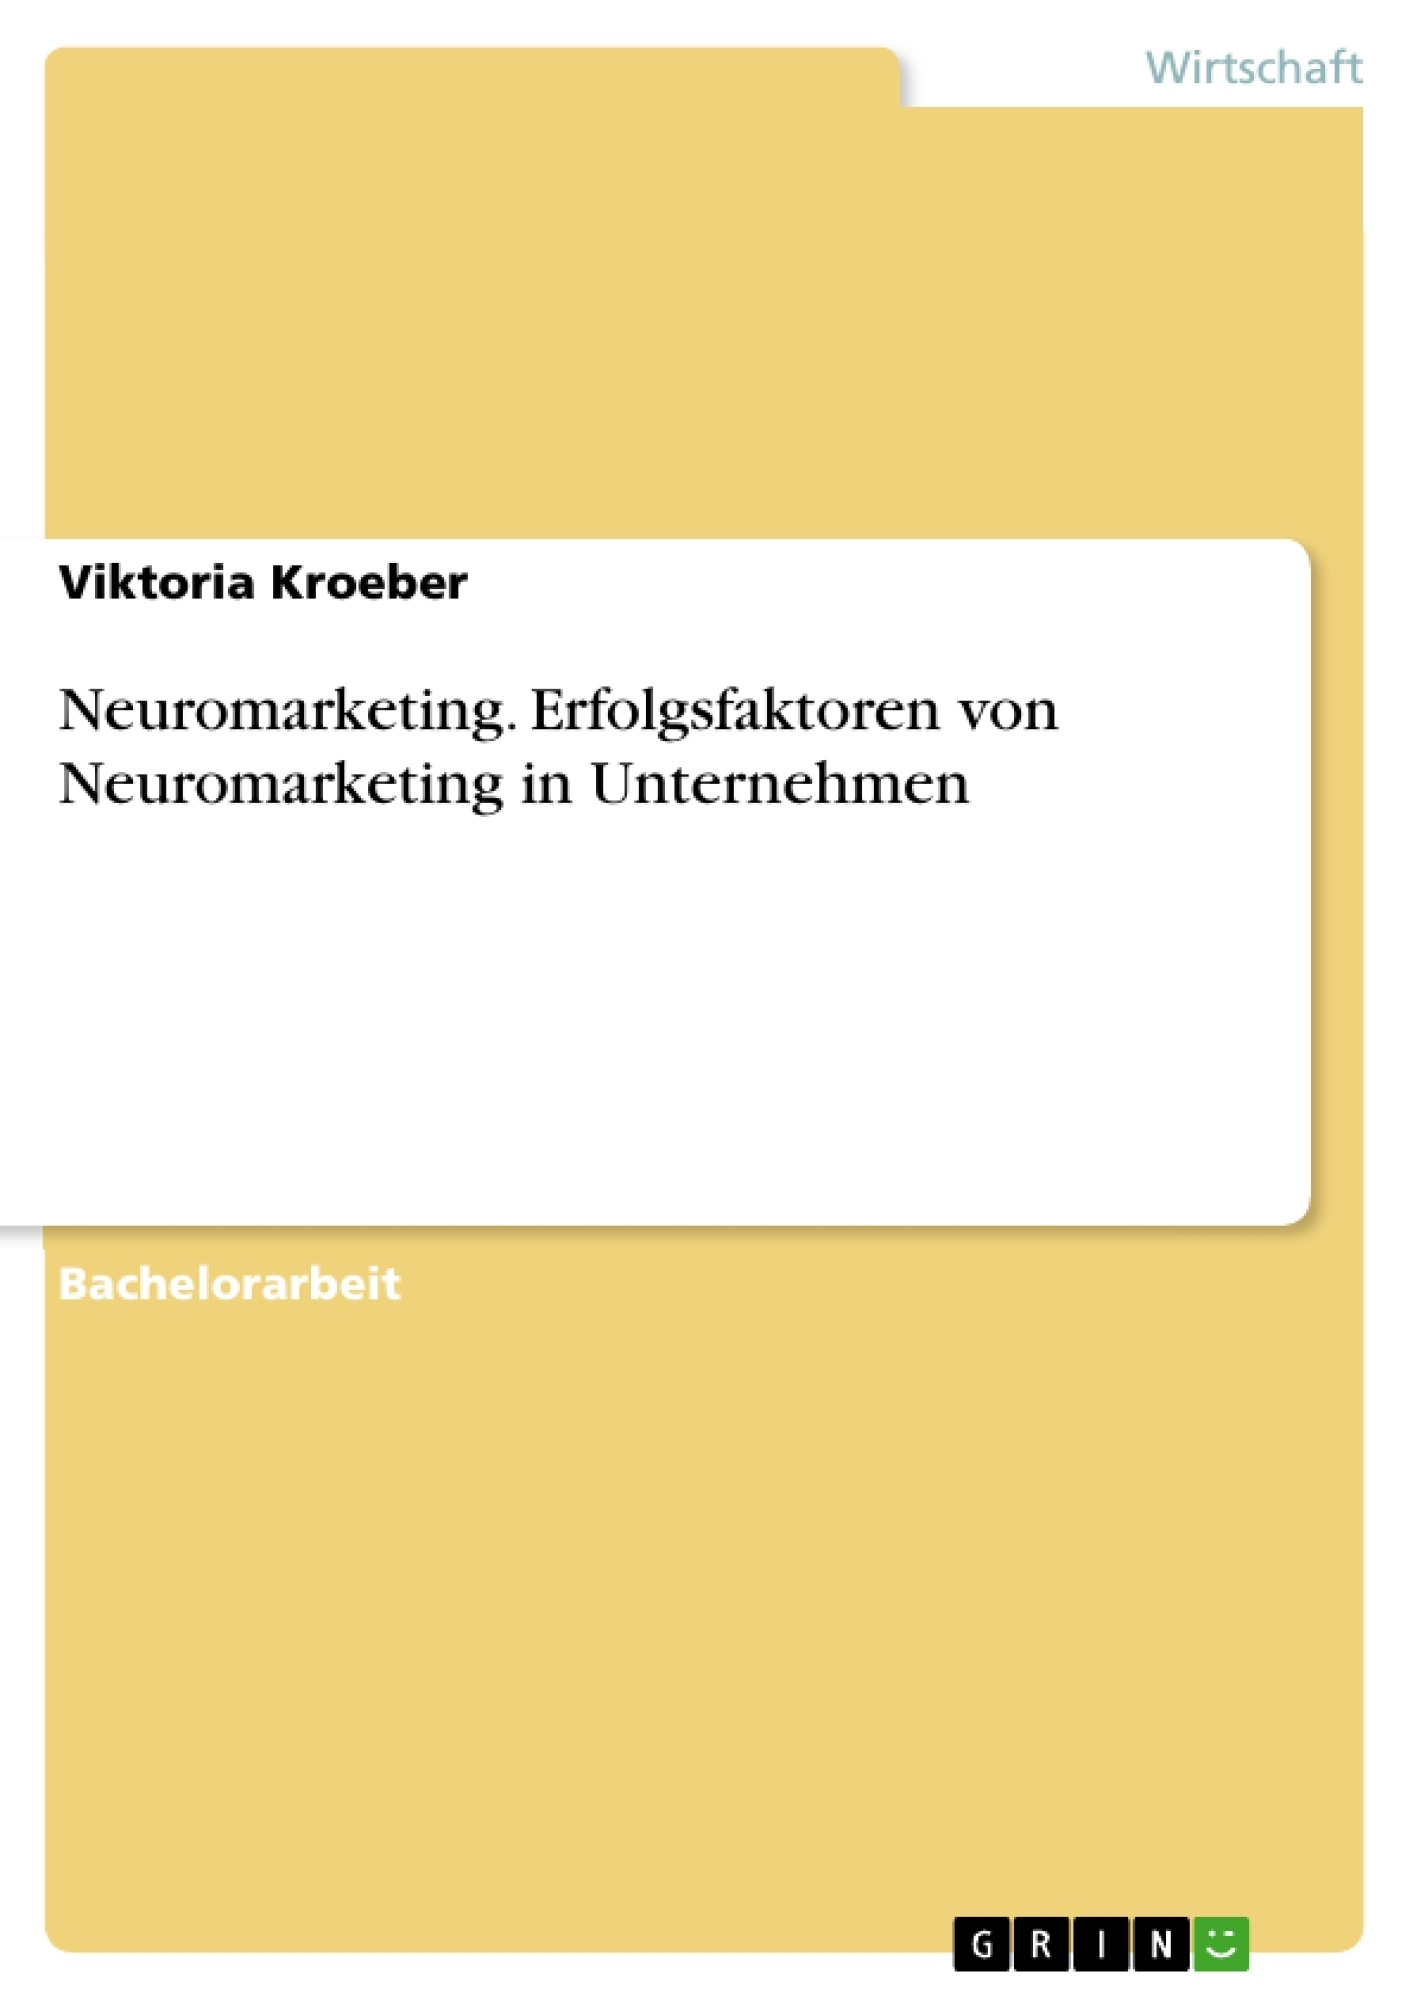 essay on neuromarketing